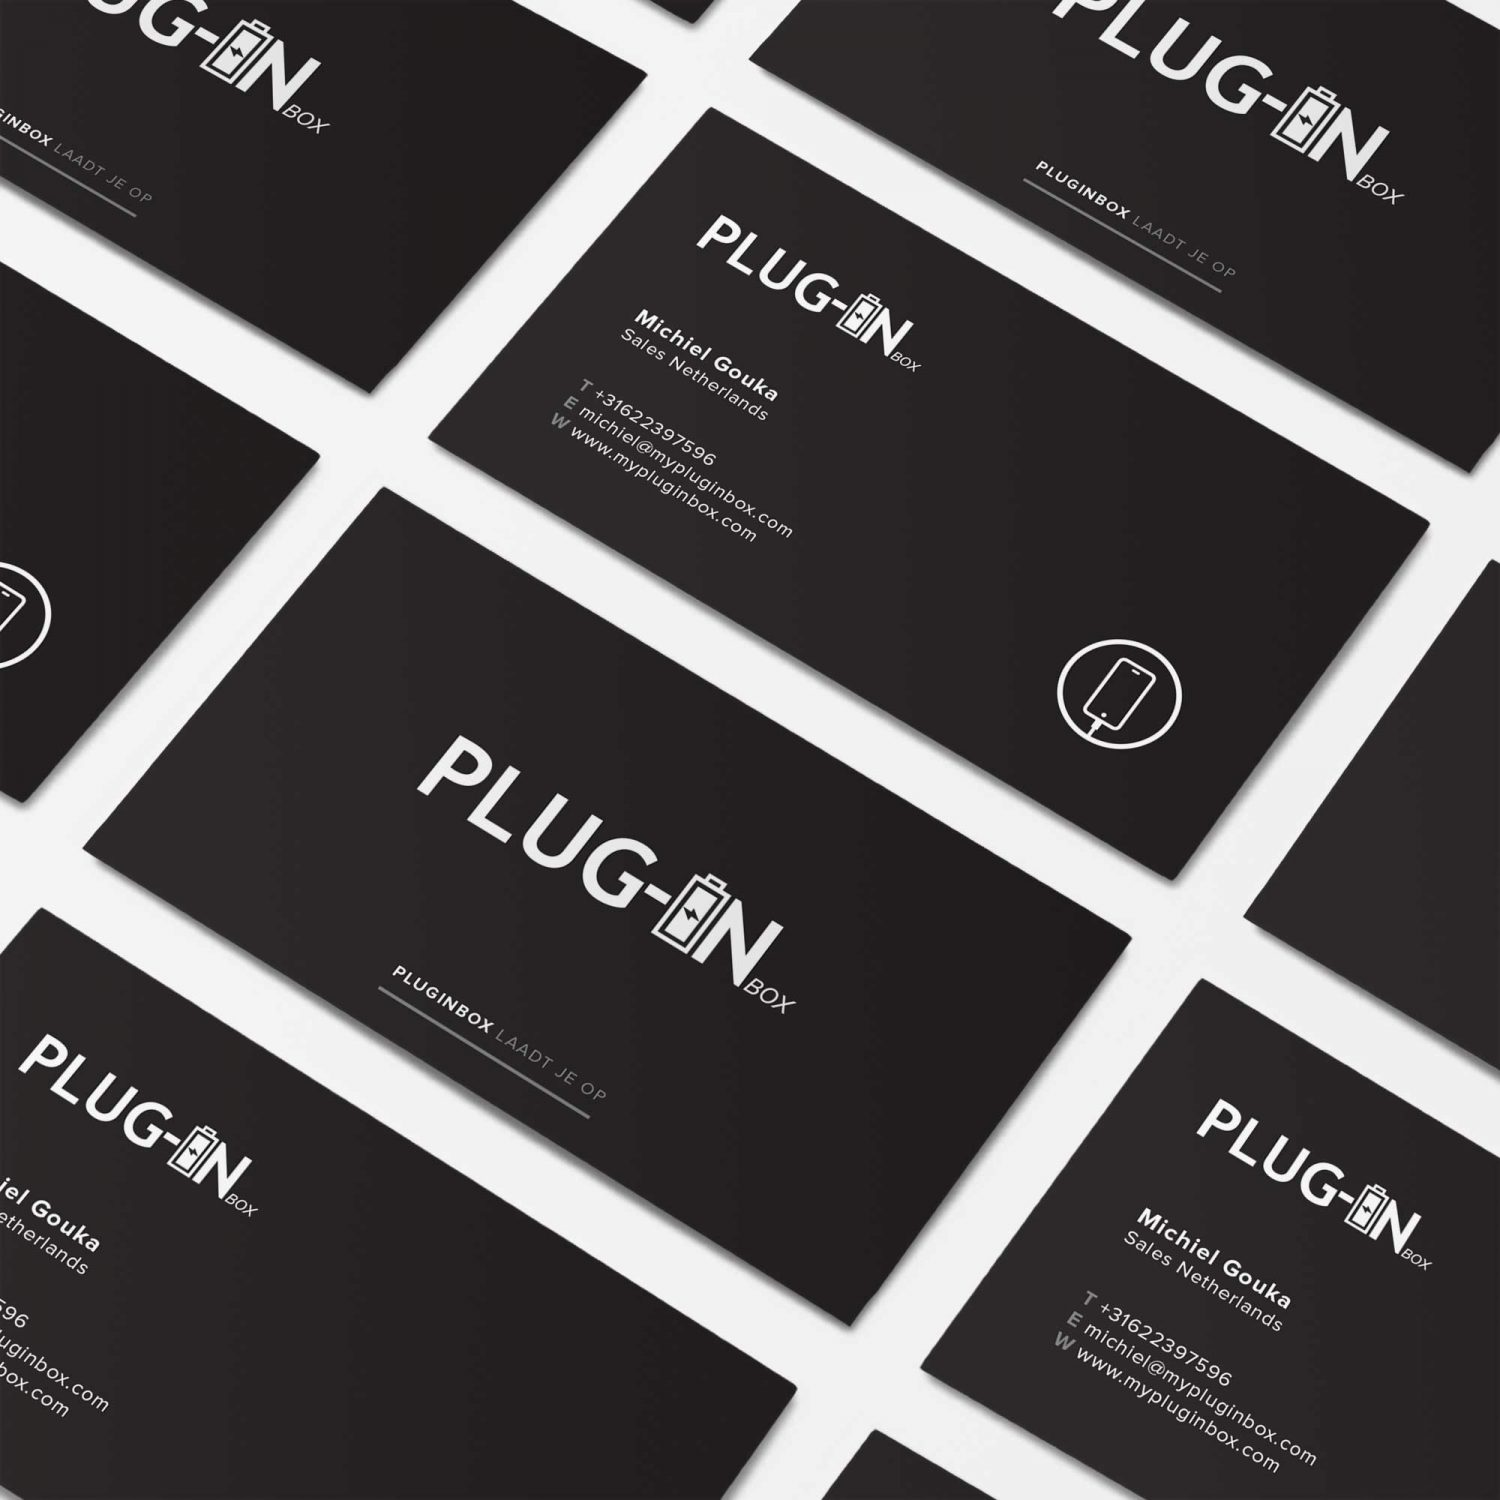 Plug-in Box Business Cards